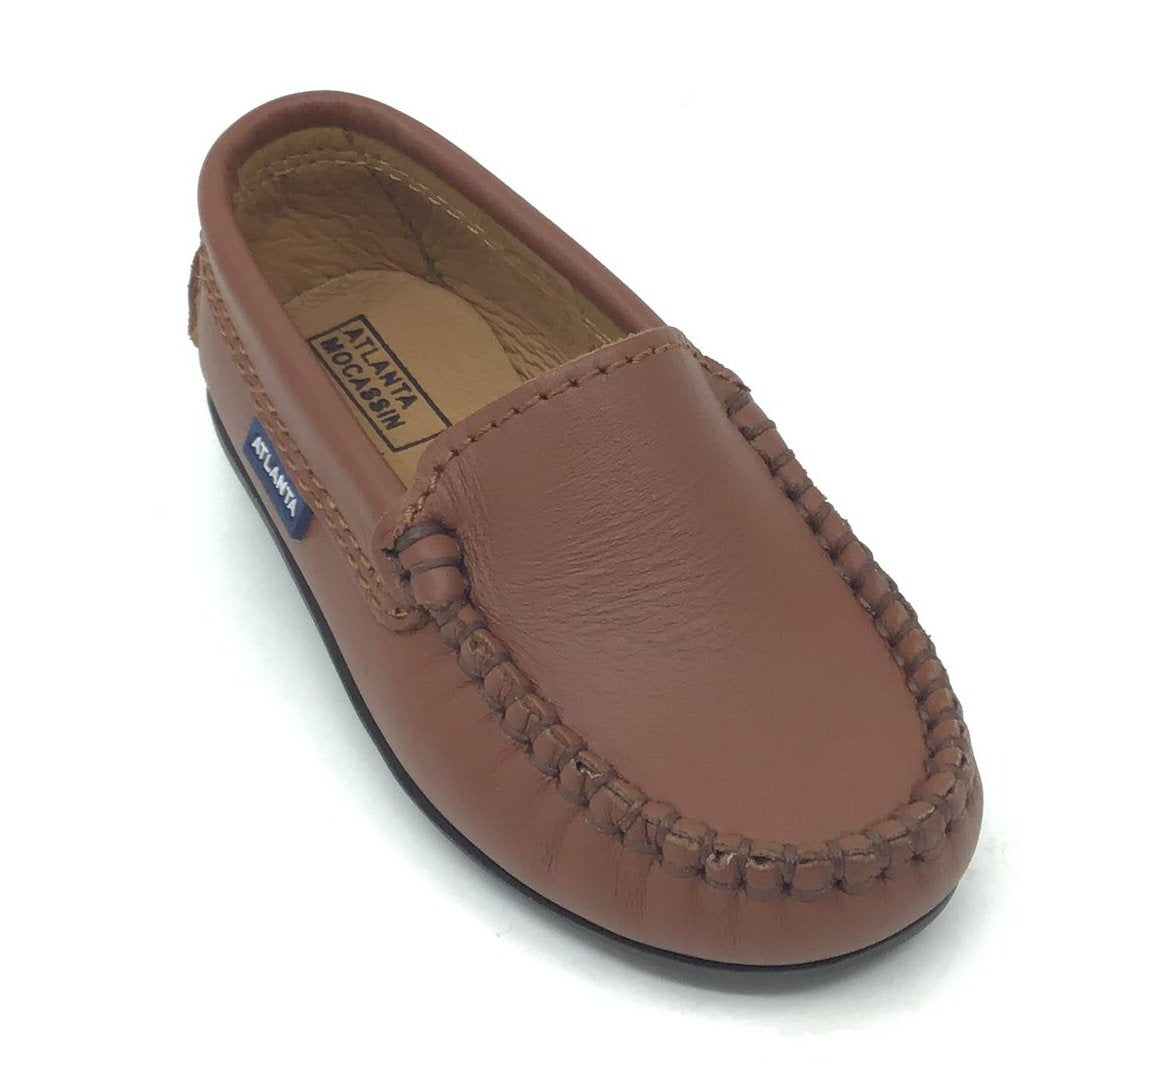 Atlanta Mocassin Luggage Loafer